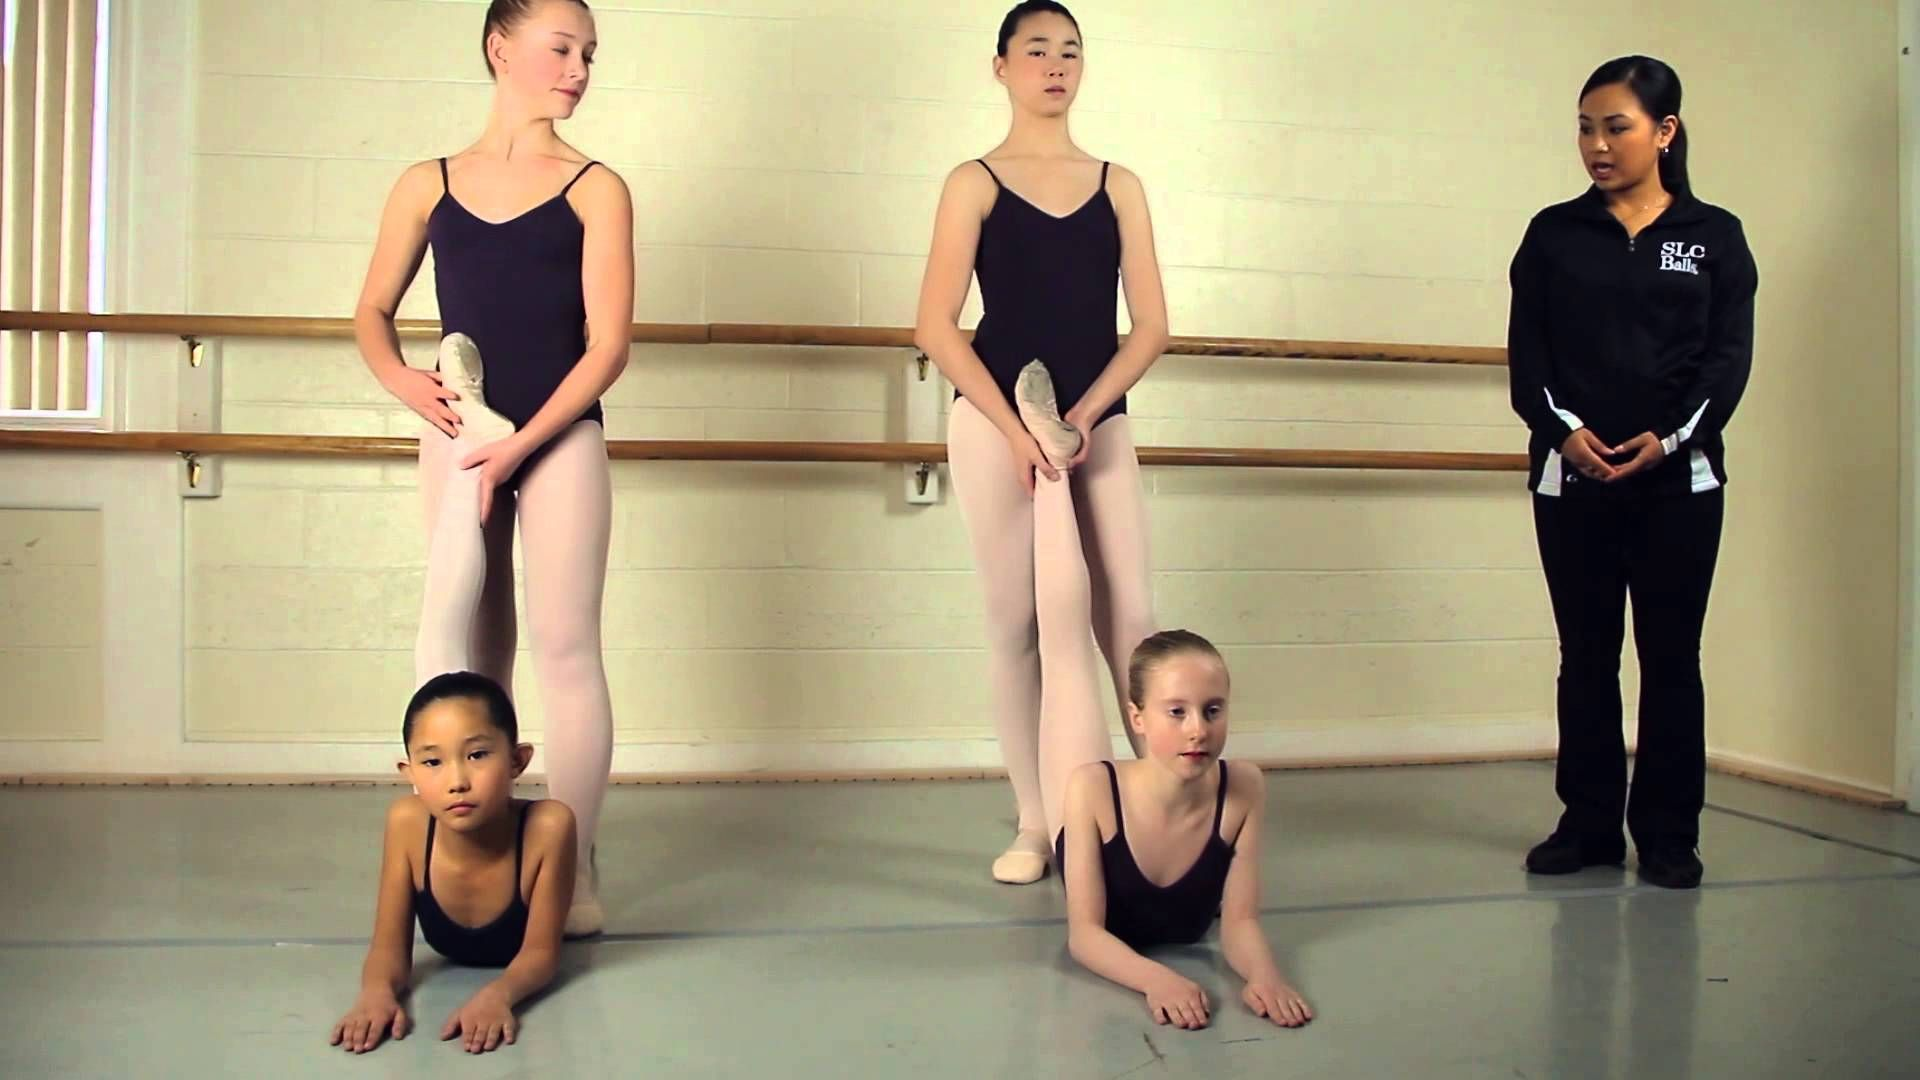 How to become flexible like a dancer